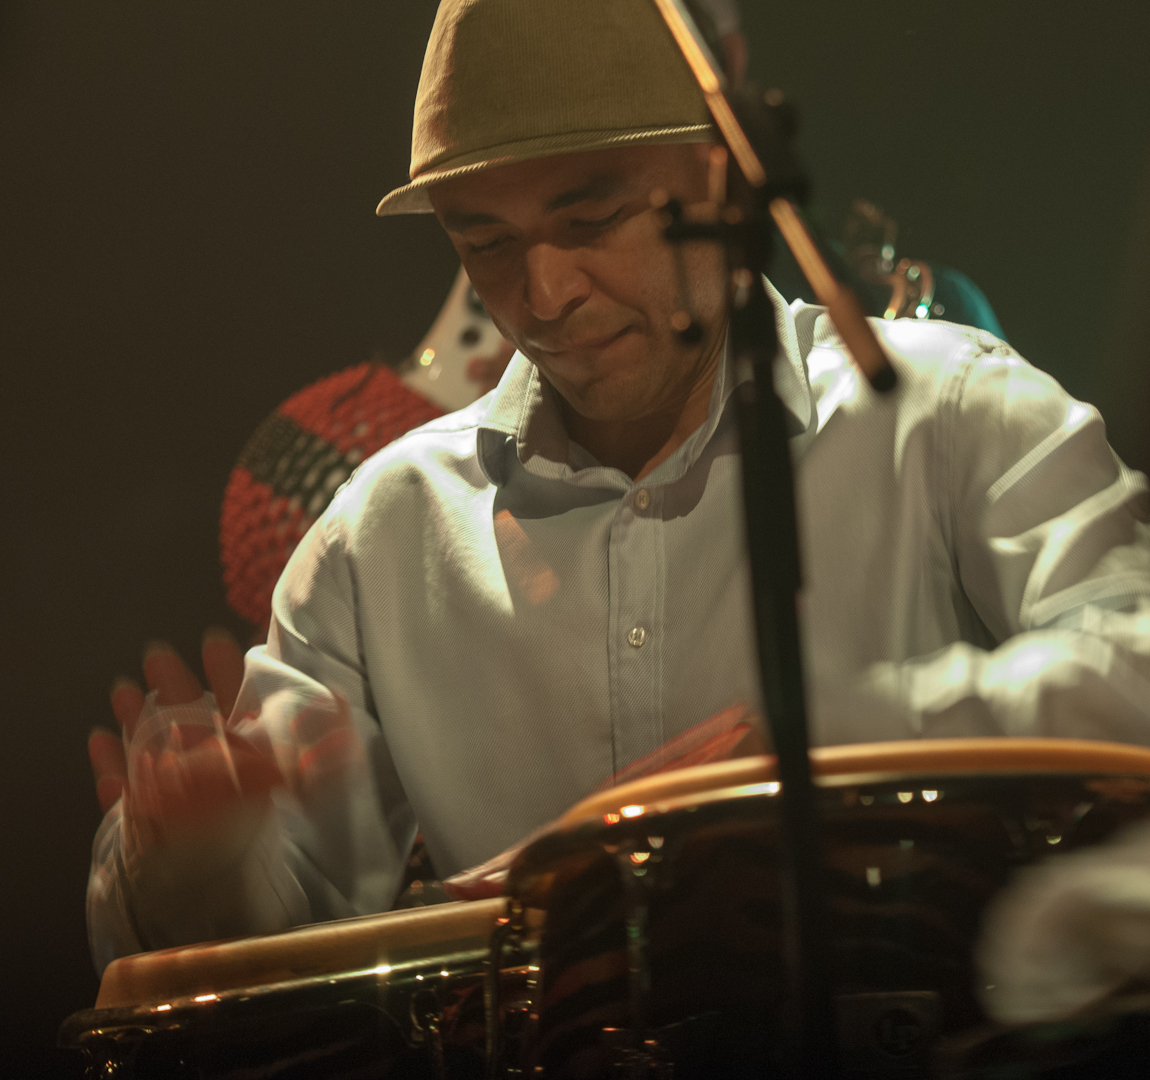 Mauricio Hererra with Ninety Miles at the Montreal International Jazz Festival 2012